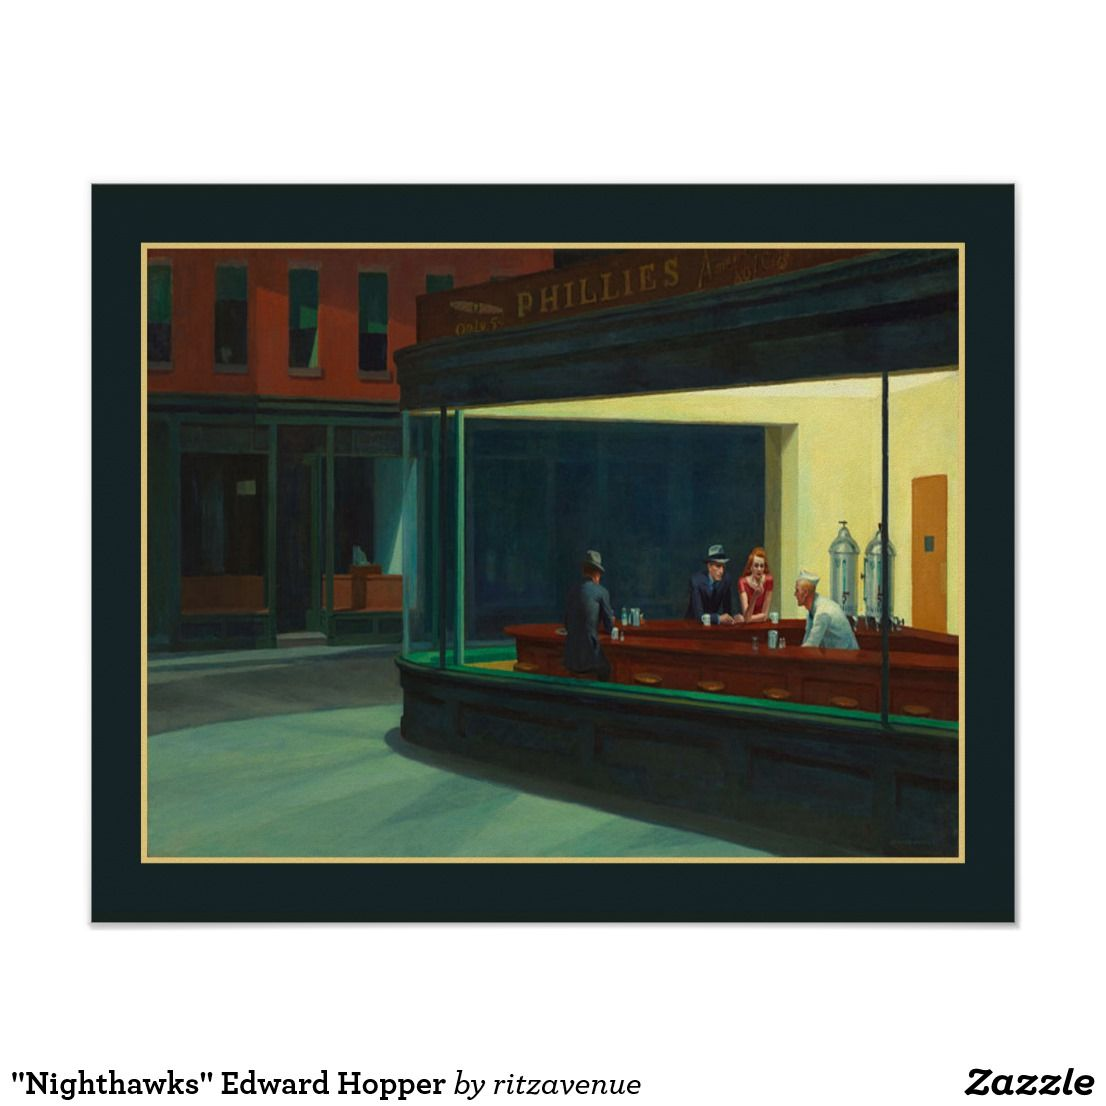 Nighthawks Edward Hopper Poster Zazzle Com Edward Hopper Edward Hopper Paintings Hopper Art